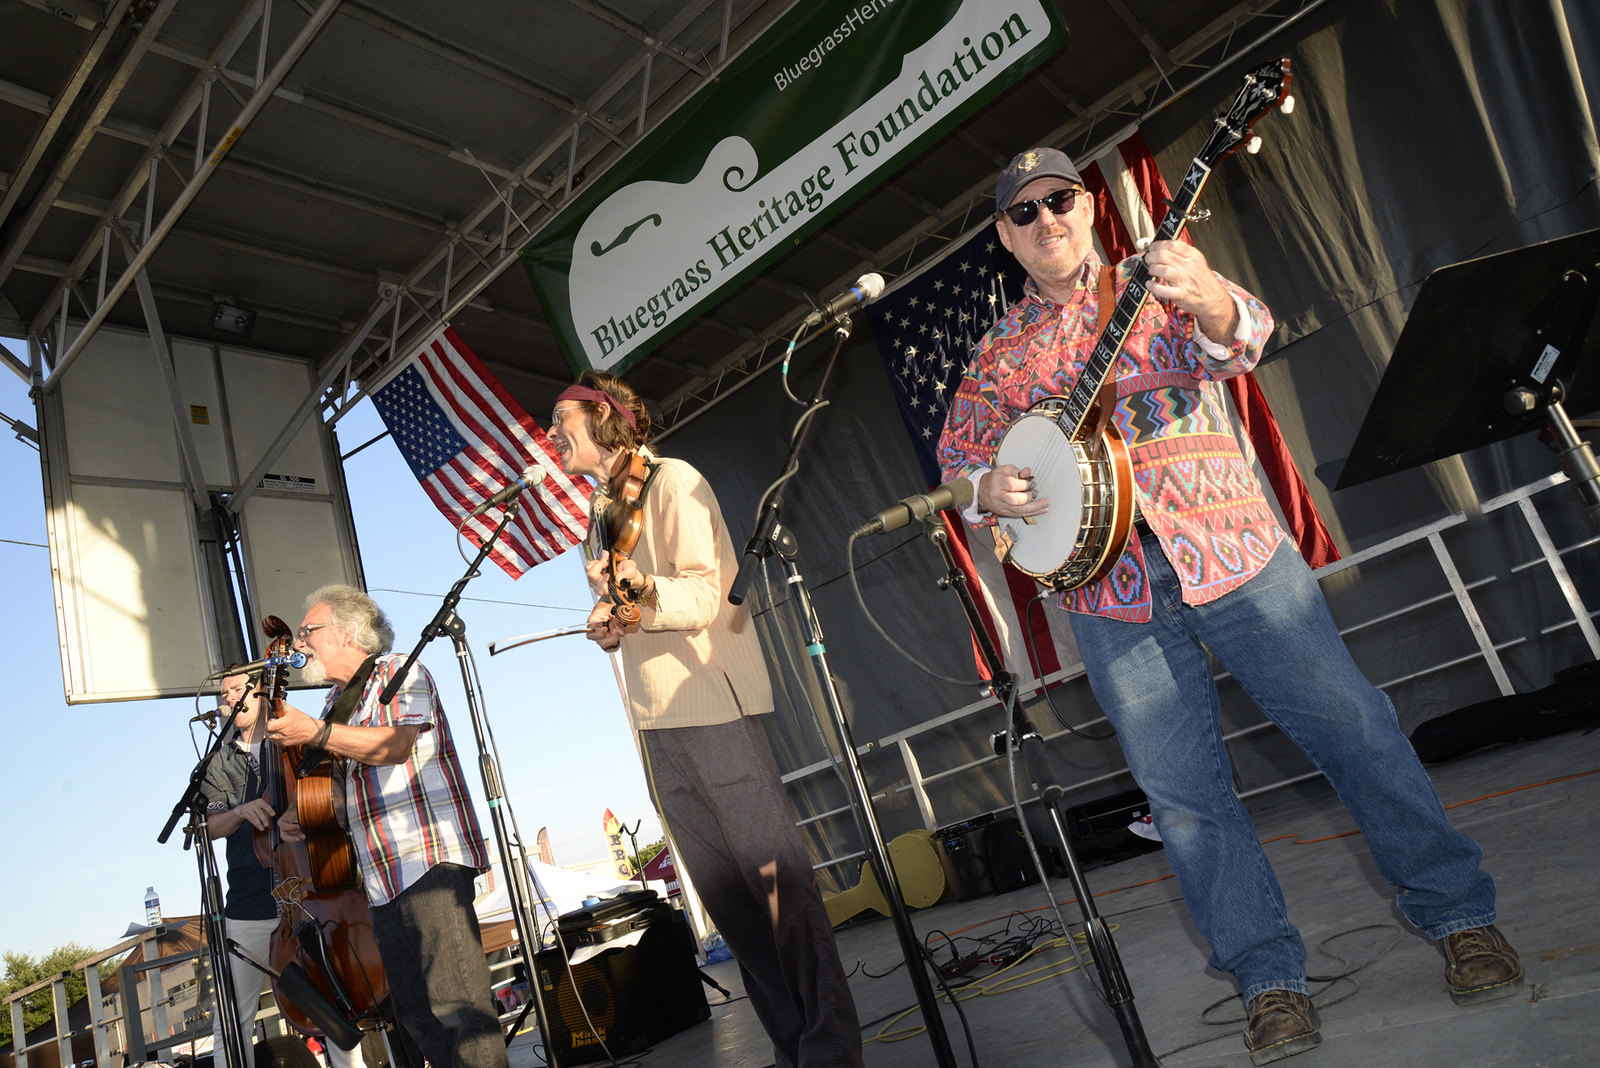 Sgt Pepper's Lonely Bluegrass Band at Wylie Jubilee 2015 (by Craig Kelly)